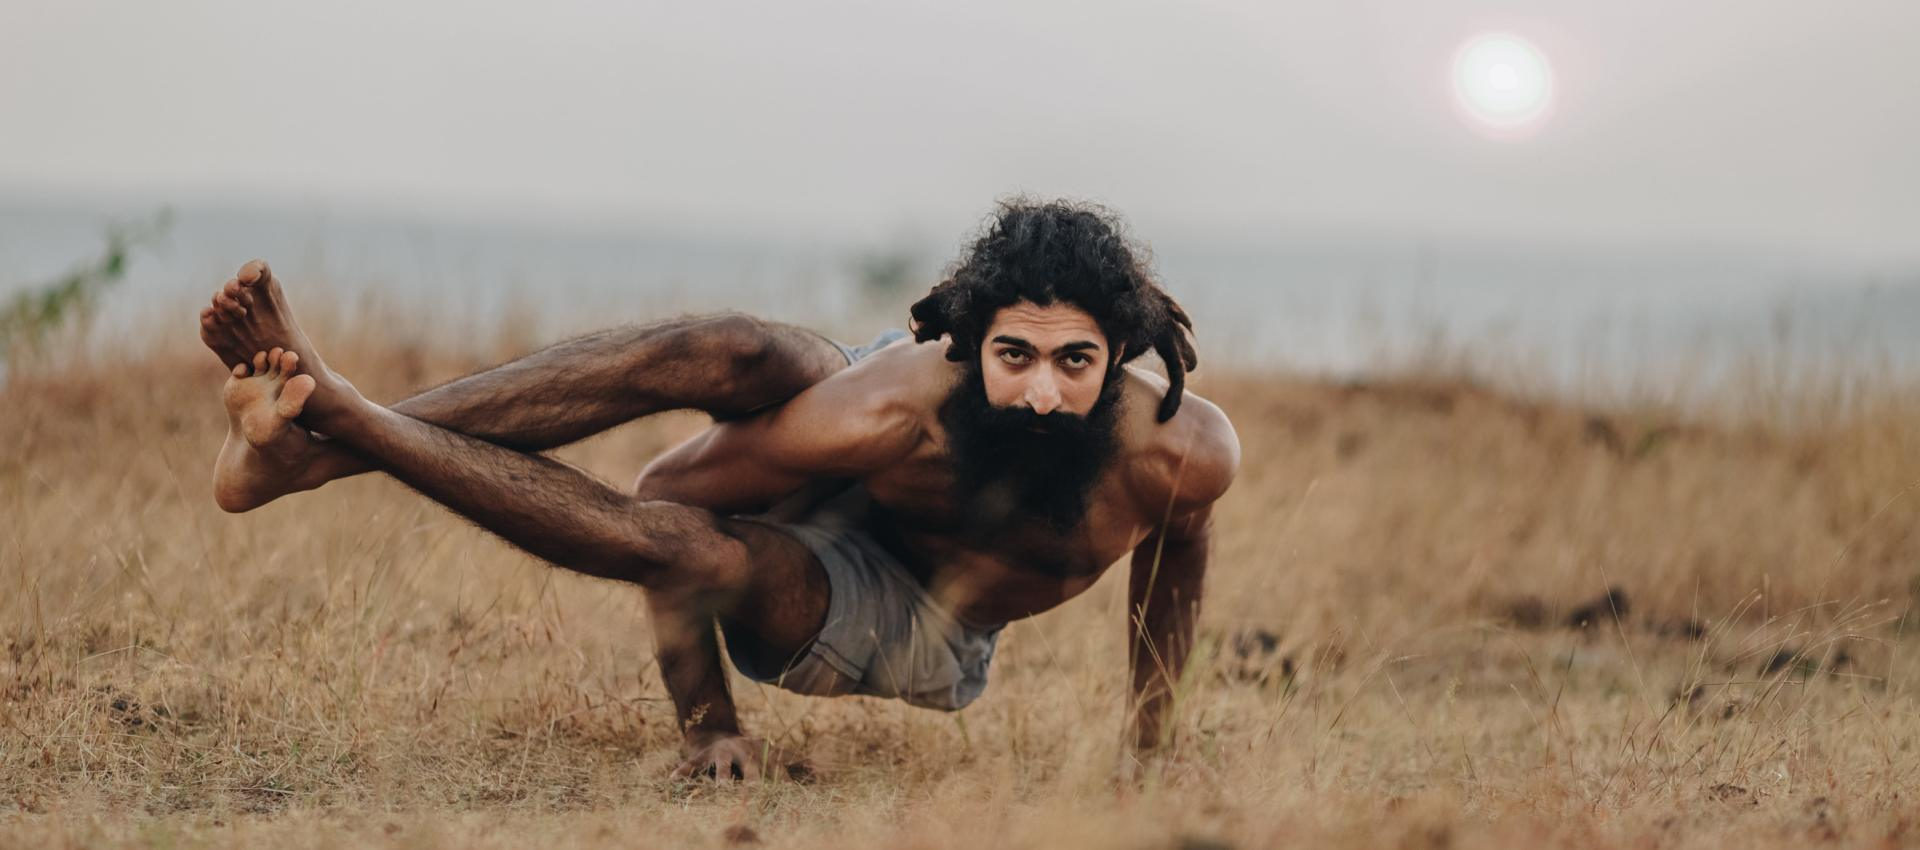 Patanjali, Yoga And The Workings Of The Mind